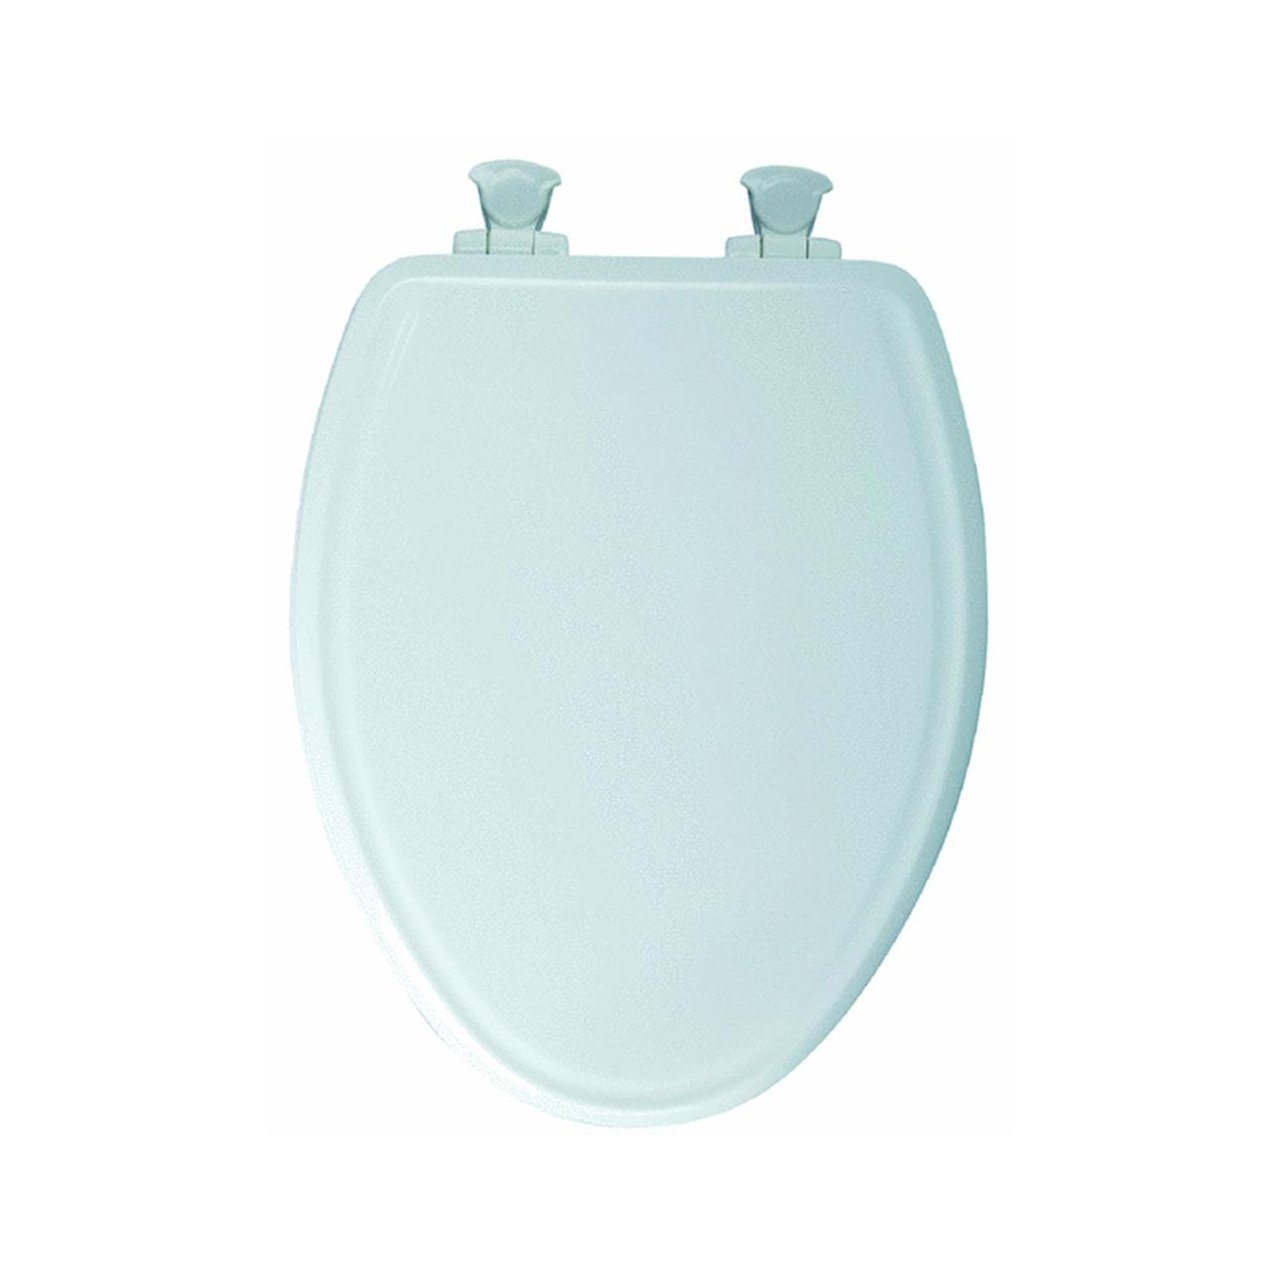 Mayfair 148SLOWA 000/1848SLOWA 000 Slow-Close Molded Wood Toilet Seat featuring Whisper-Close